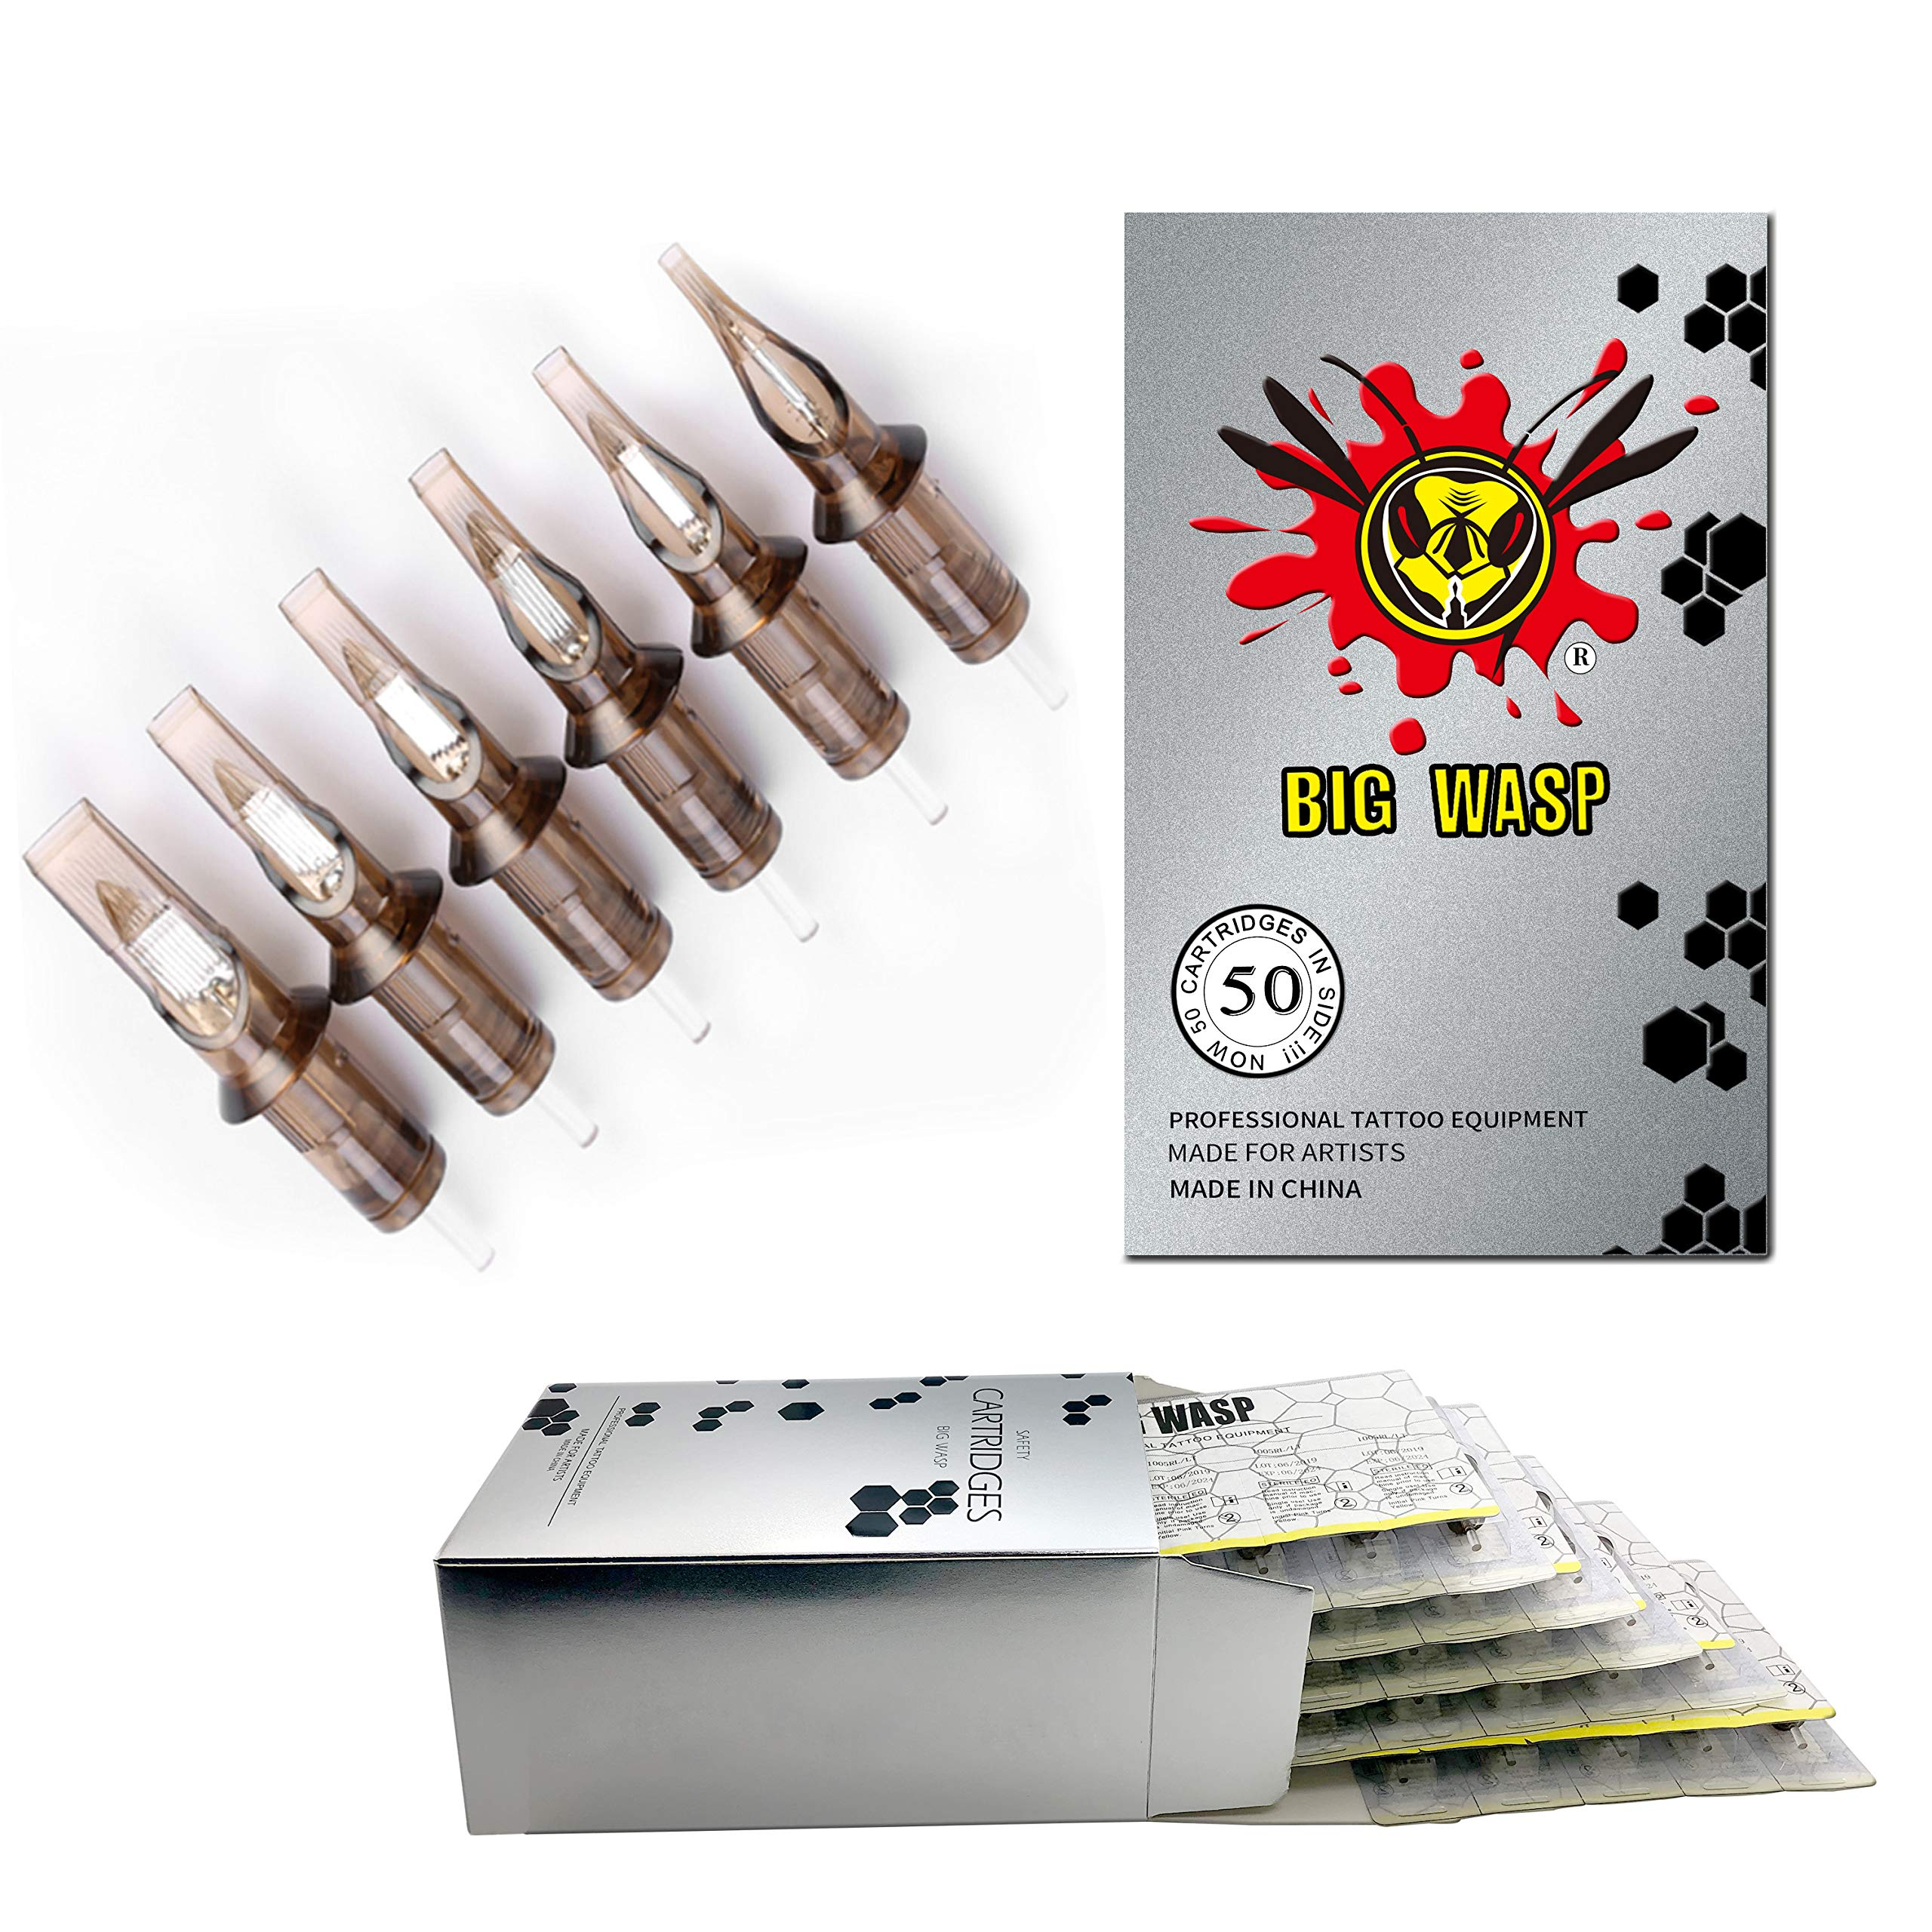 BIGWASP (3rd Gen) 50pcs Assorted Disposable Cartridge Tattoo Needles Curved Magnum Mixed 7RM 9RM 11RM 13RM 15RM (#12 Standard RM) by BIGWASP